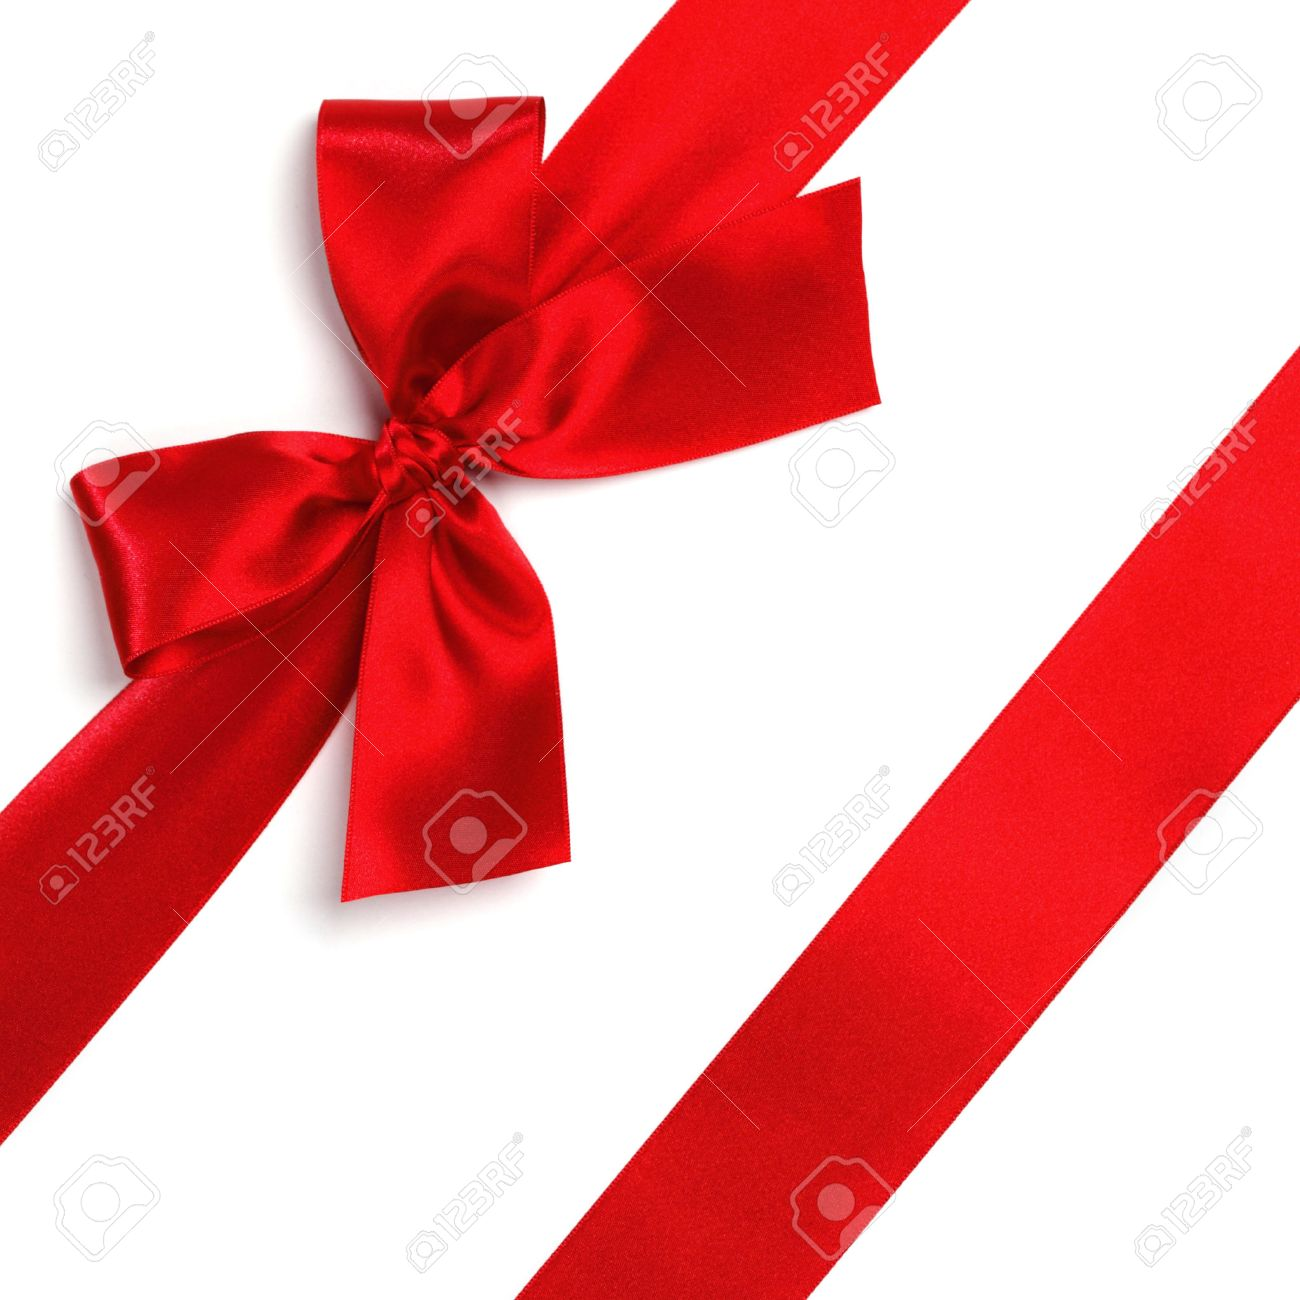 Red satin gift bow ribbon isolated on white stock photo picture red satin gift bow ribbon isolated on white stock photo 46252826 negle Image collections